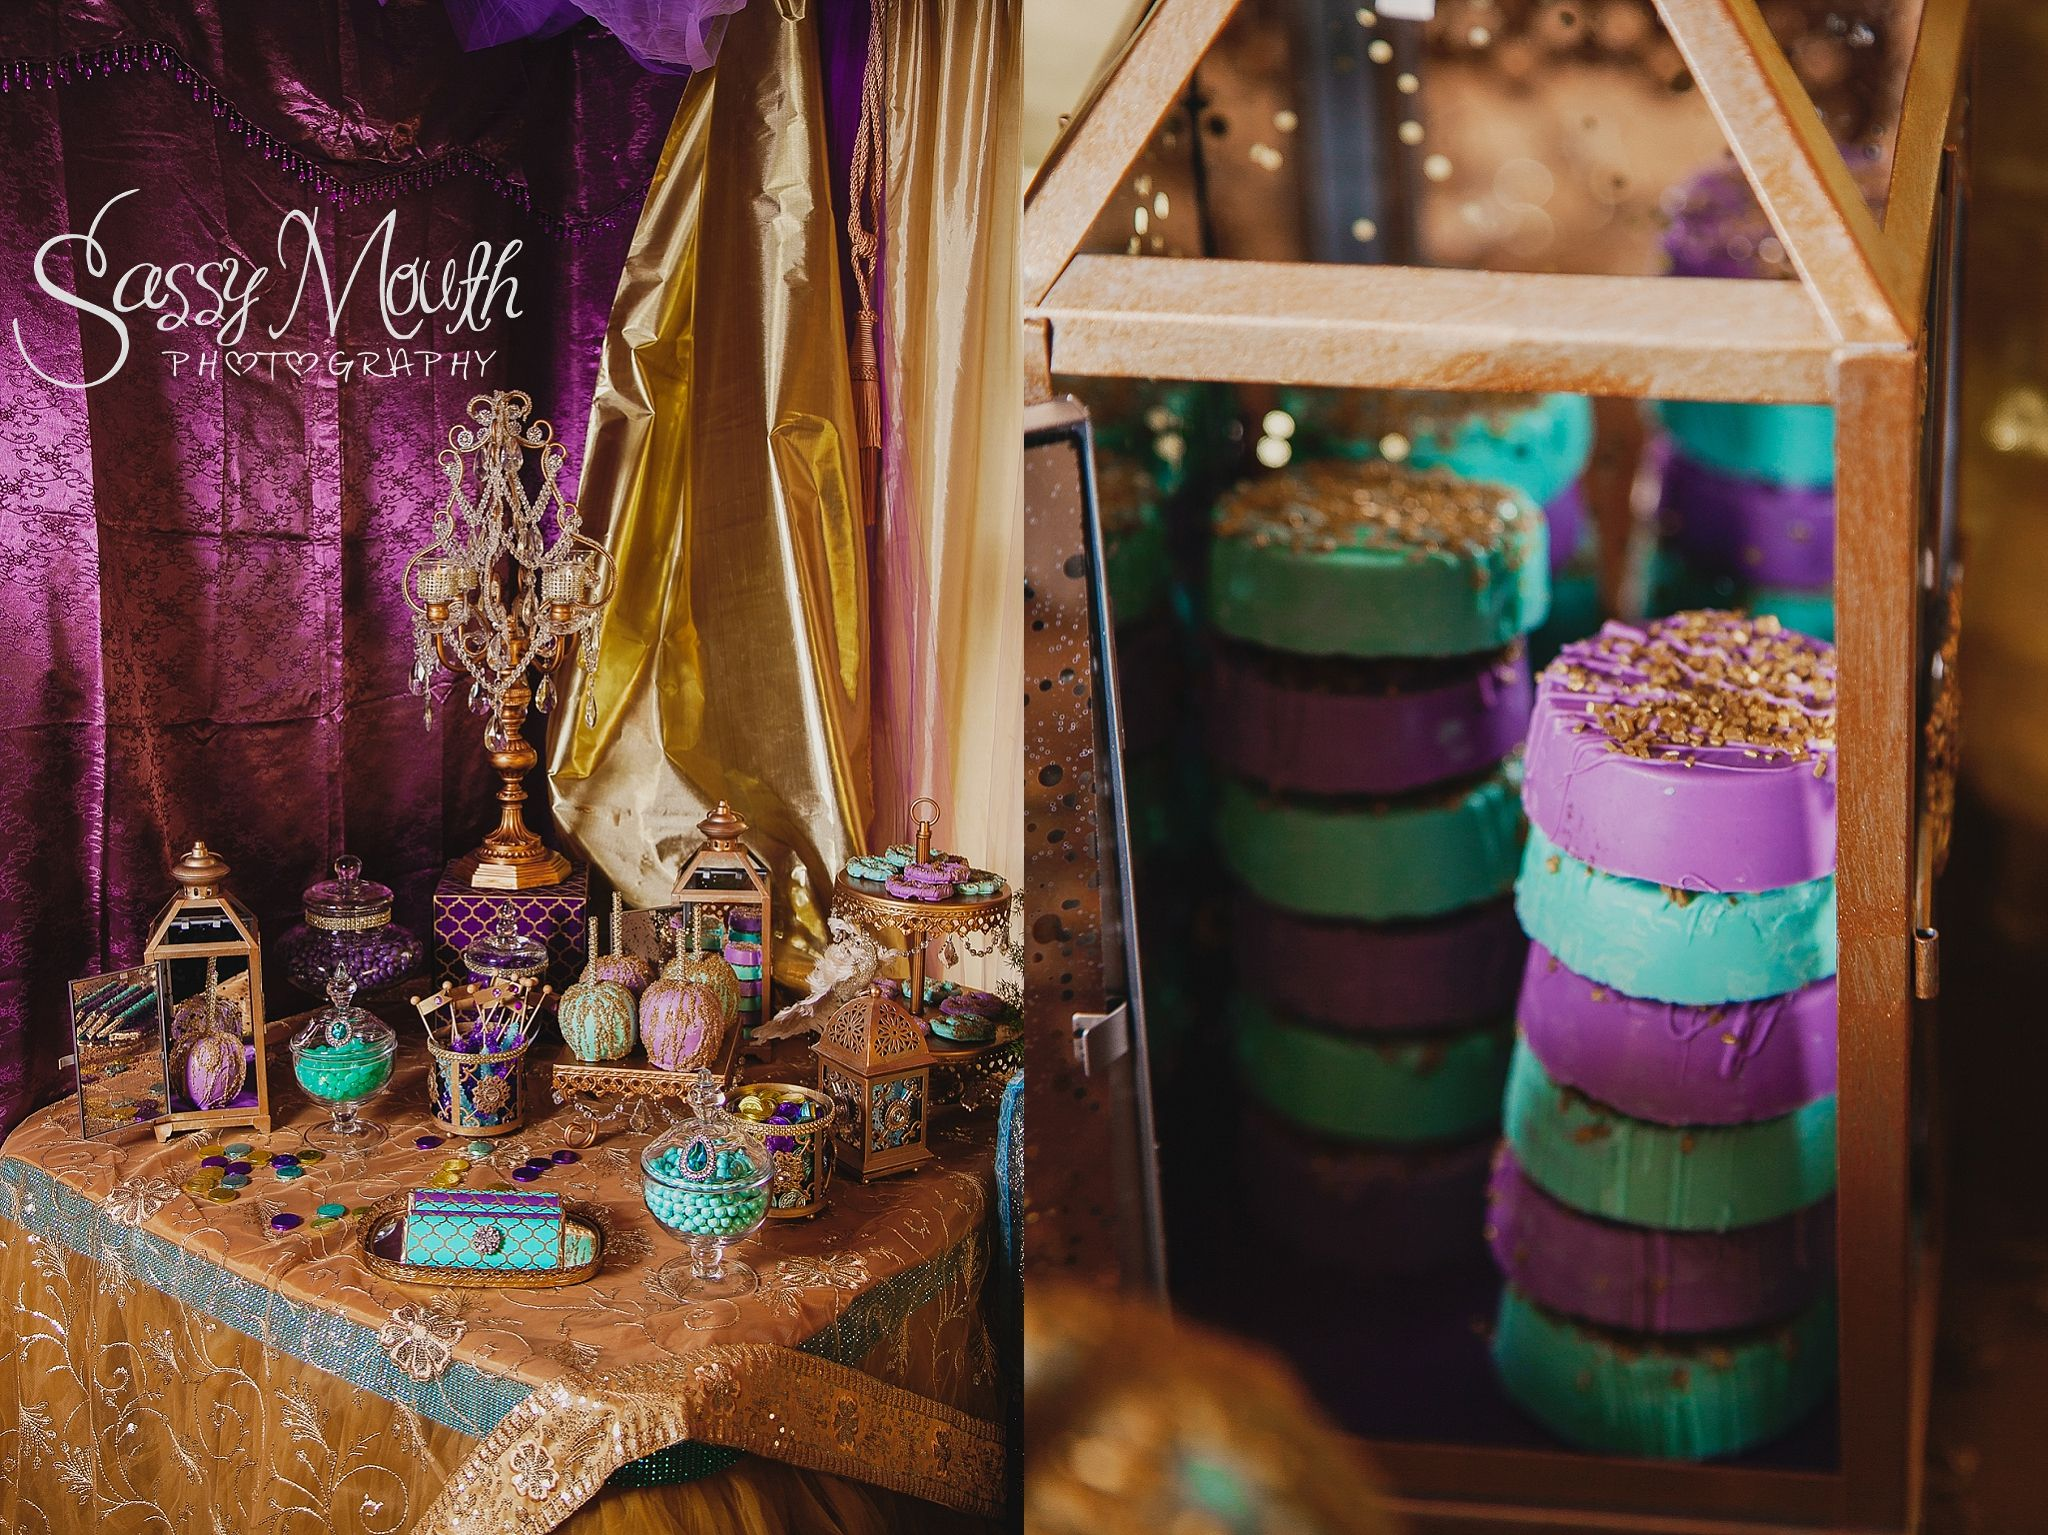 Candy Table Arabian Nights Aladdin Wedding Princess Jasmine Bride Sassy Mouth Photography Photo Series